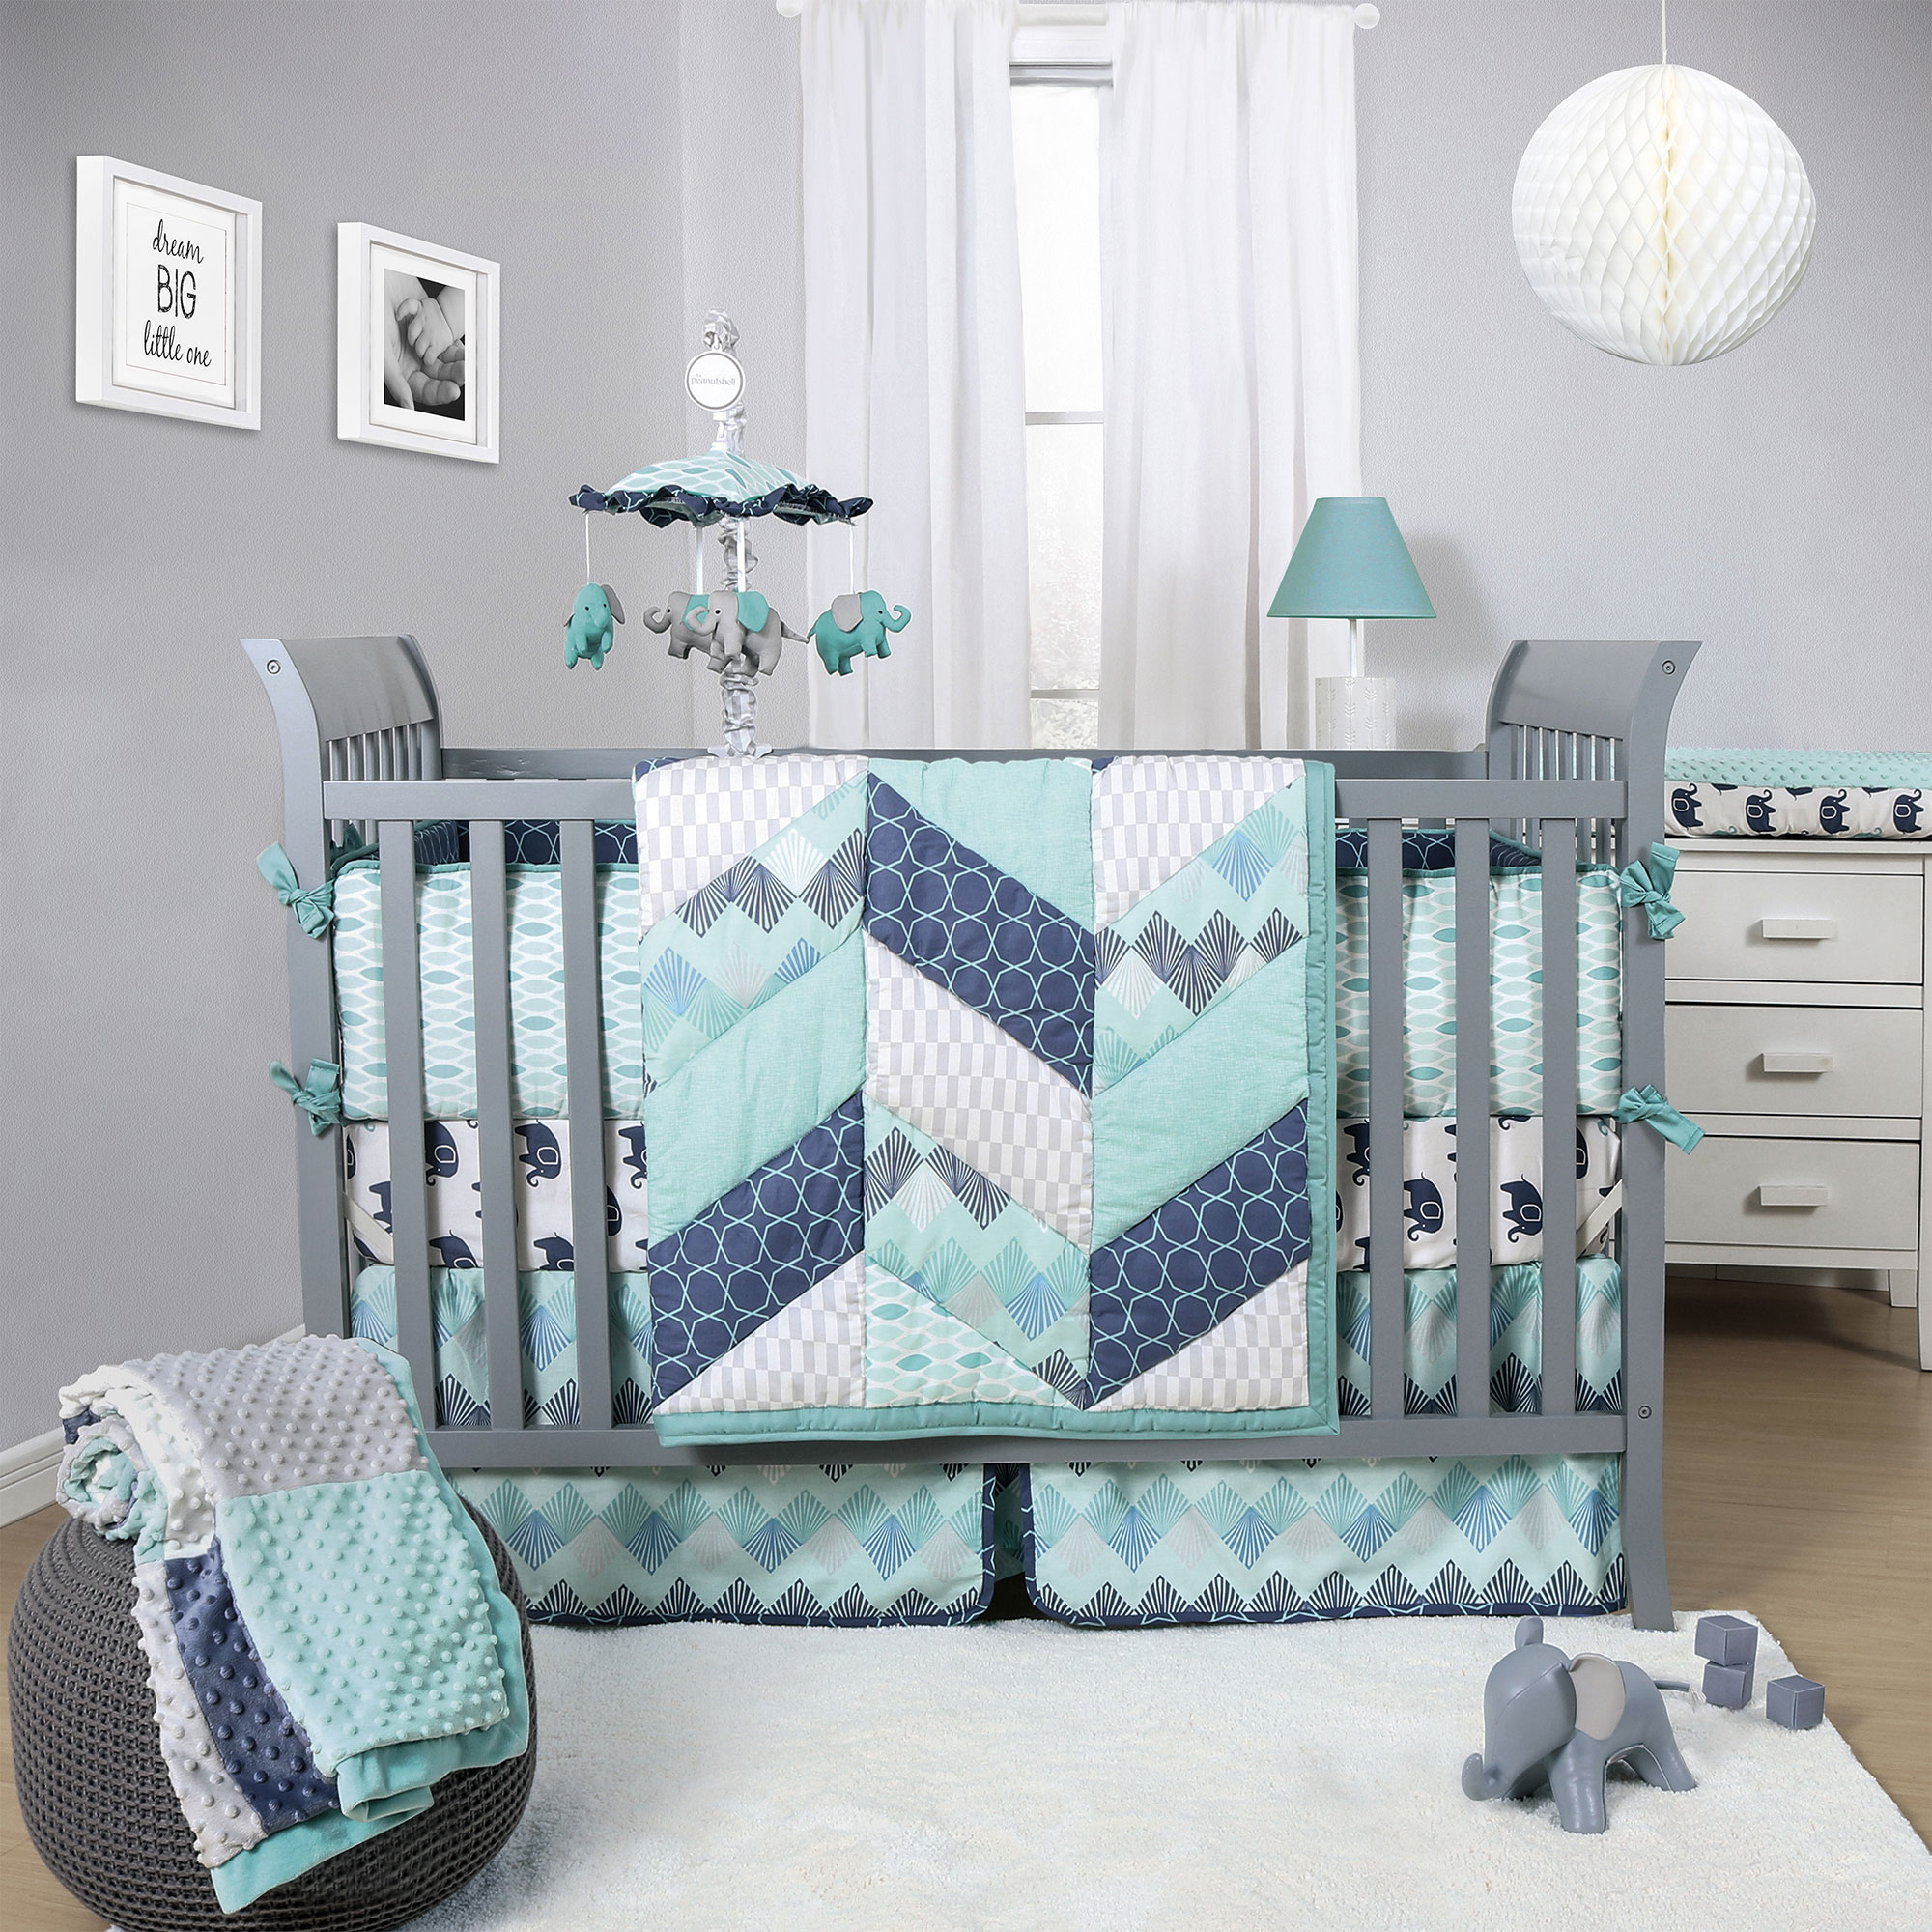 The Peanut Shell Mosaic Crib Bedding Set - Geometric Prints in Teal, Gray, and Blue - 3 Piece Baby Nursery Bedding Collection